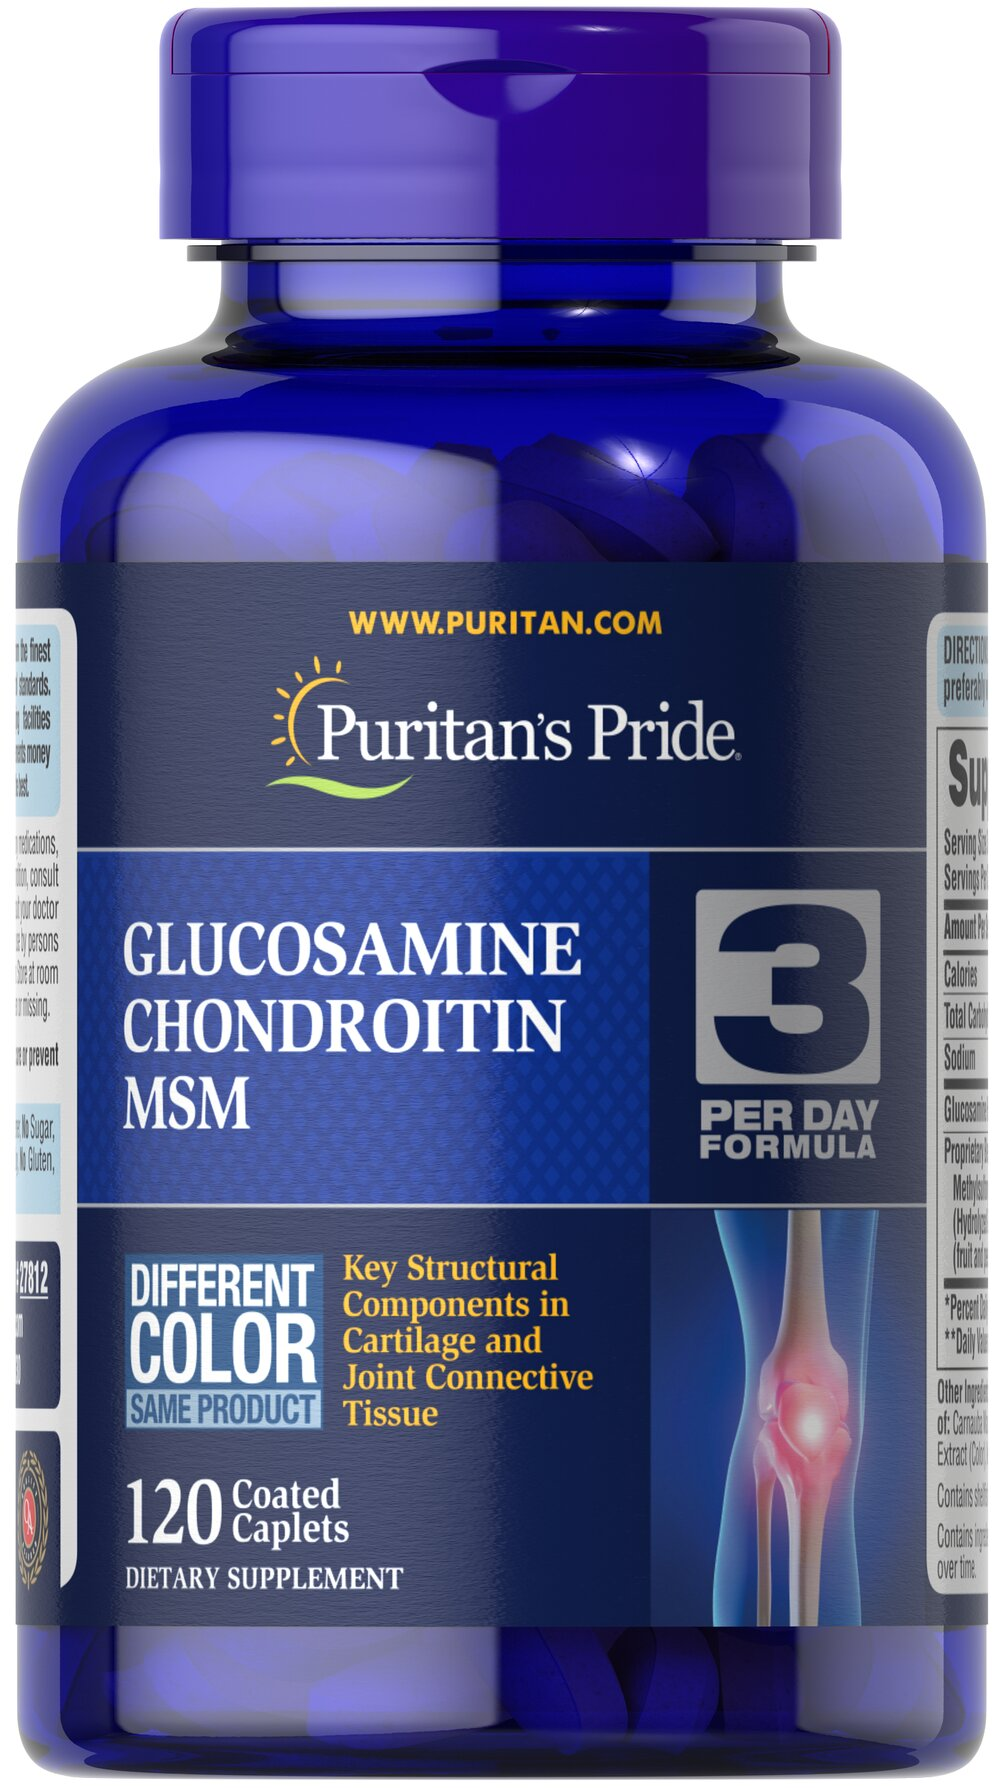 Double Strength Glucosamine, Chondroitin & MSM Joint Soother® <p>Combines the top three structural components found in popular joint support products — Glucosamine, Chondroitin and MSM — with amino and herbal support from Collagen and Boswellia Serrata**</p><p>This high-quality formula delivers 1,500 mg of Glucosamine HCl  to help support cartilage, lubricate the joints, and helps with occasional joint stress due to exercise or physical activity**</p> 12